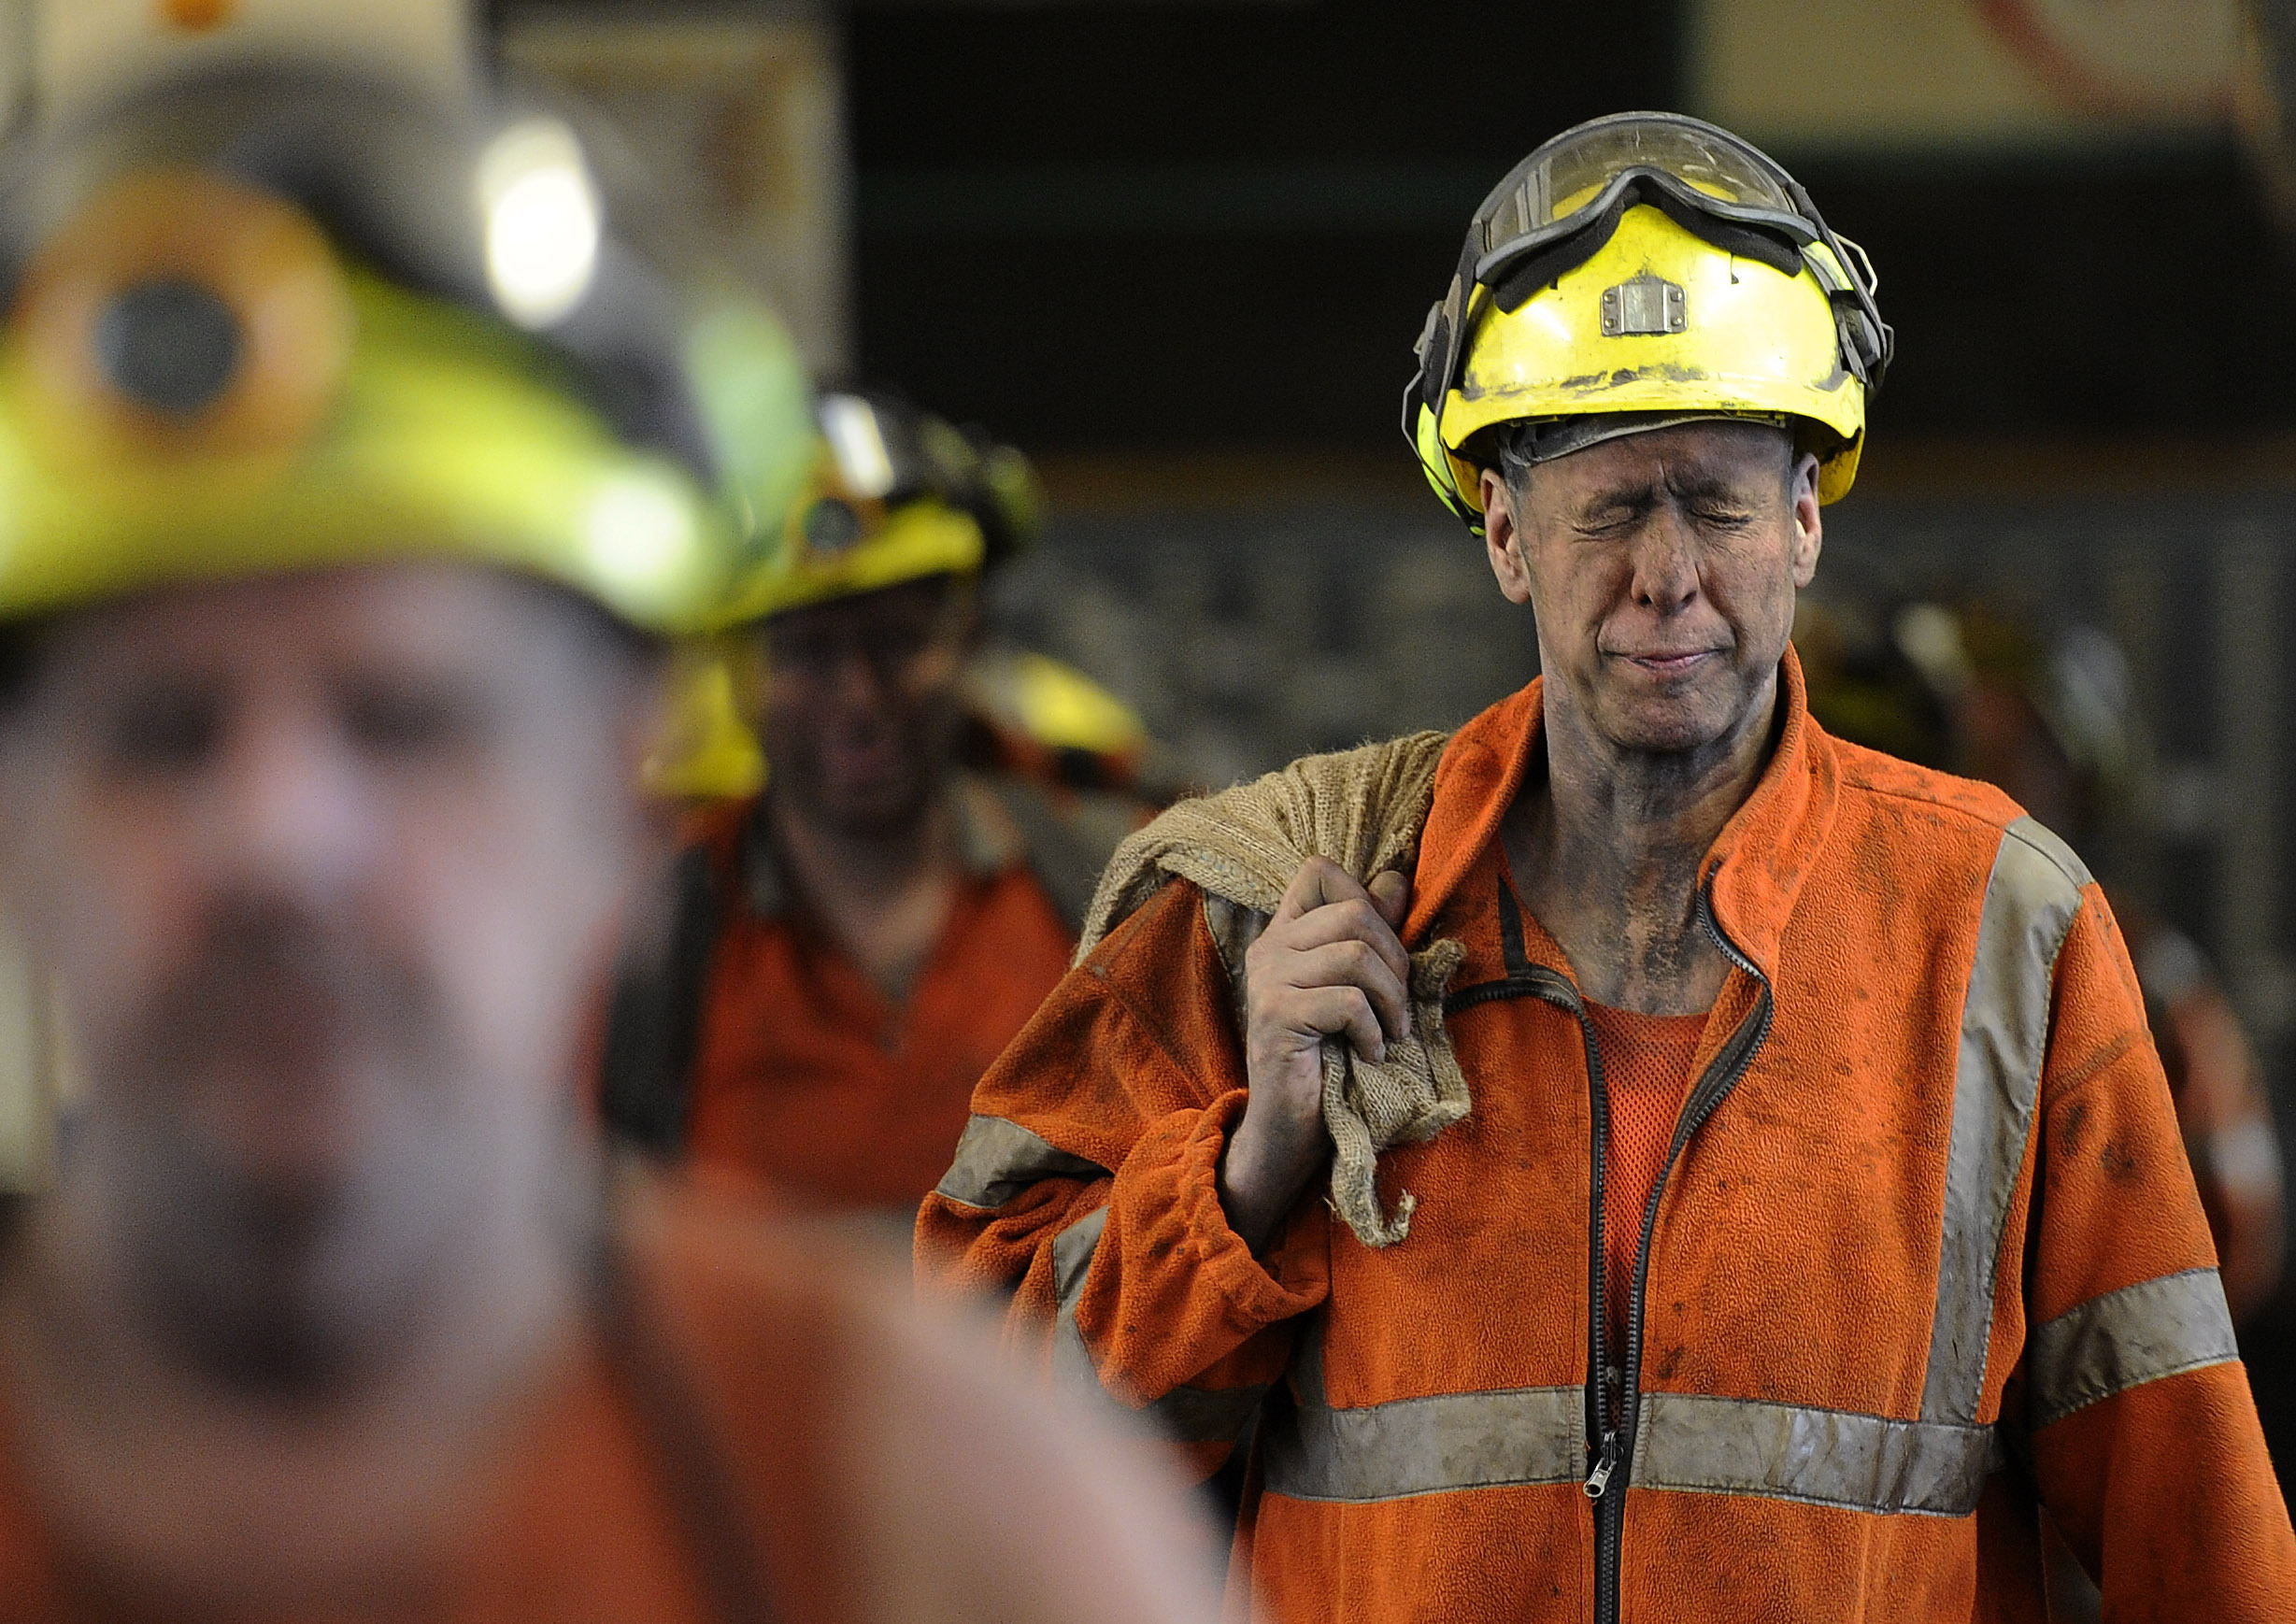 Miners come off the last shift.